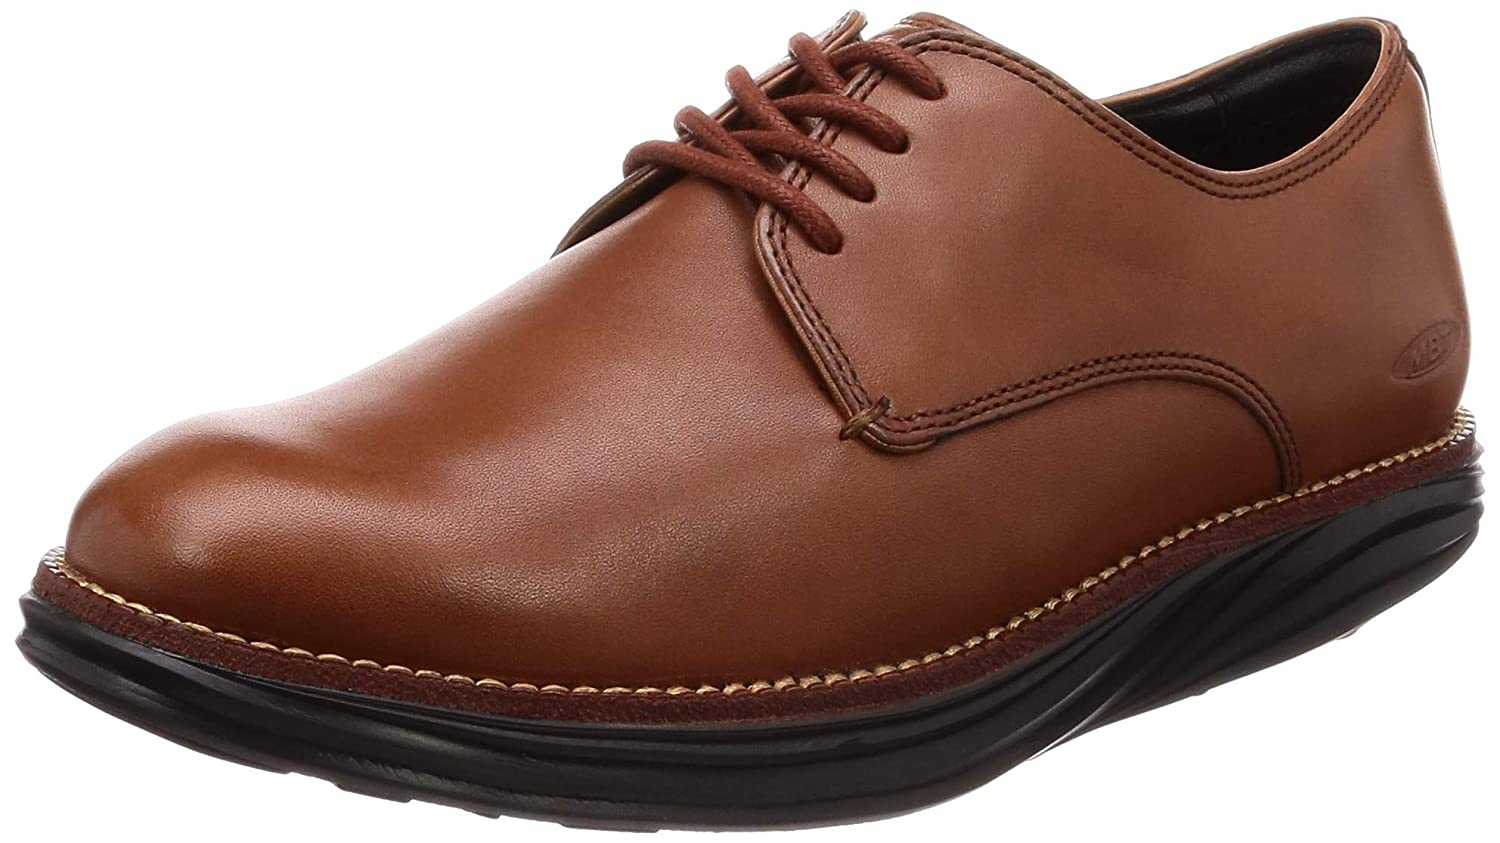 MBT SHOE MBT 700950-23N BOSTON BROWN SHOE 19964 Marron 91a5bce - piero.space